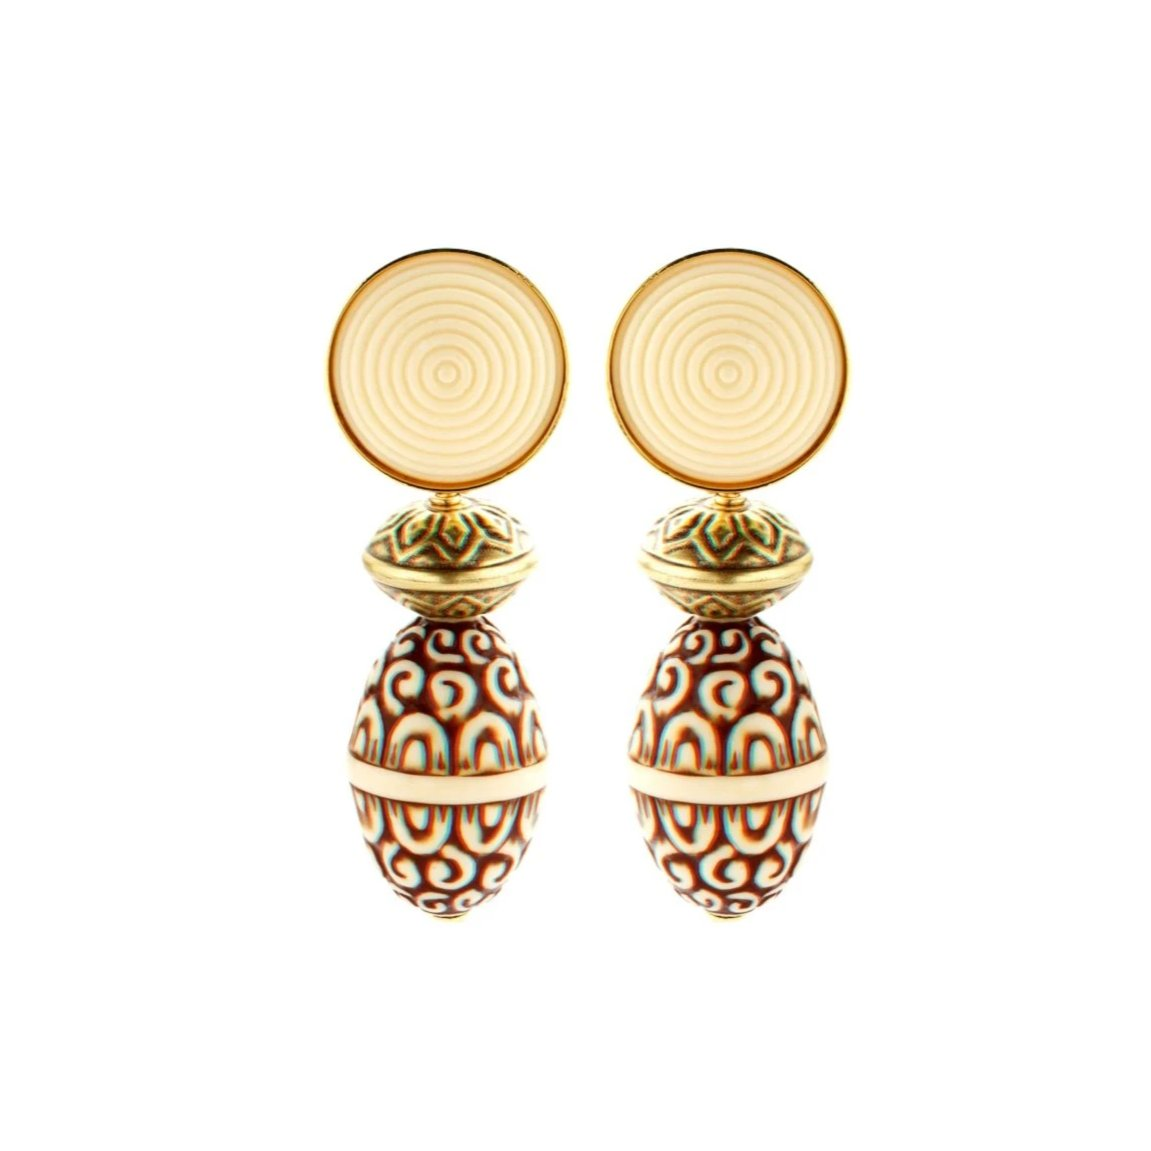 Simply ivory earrings - Souvenirs de Pomme